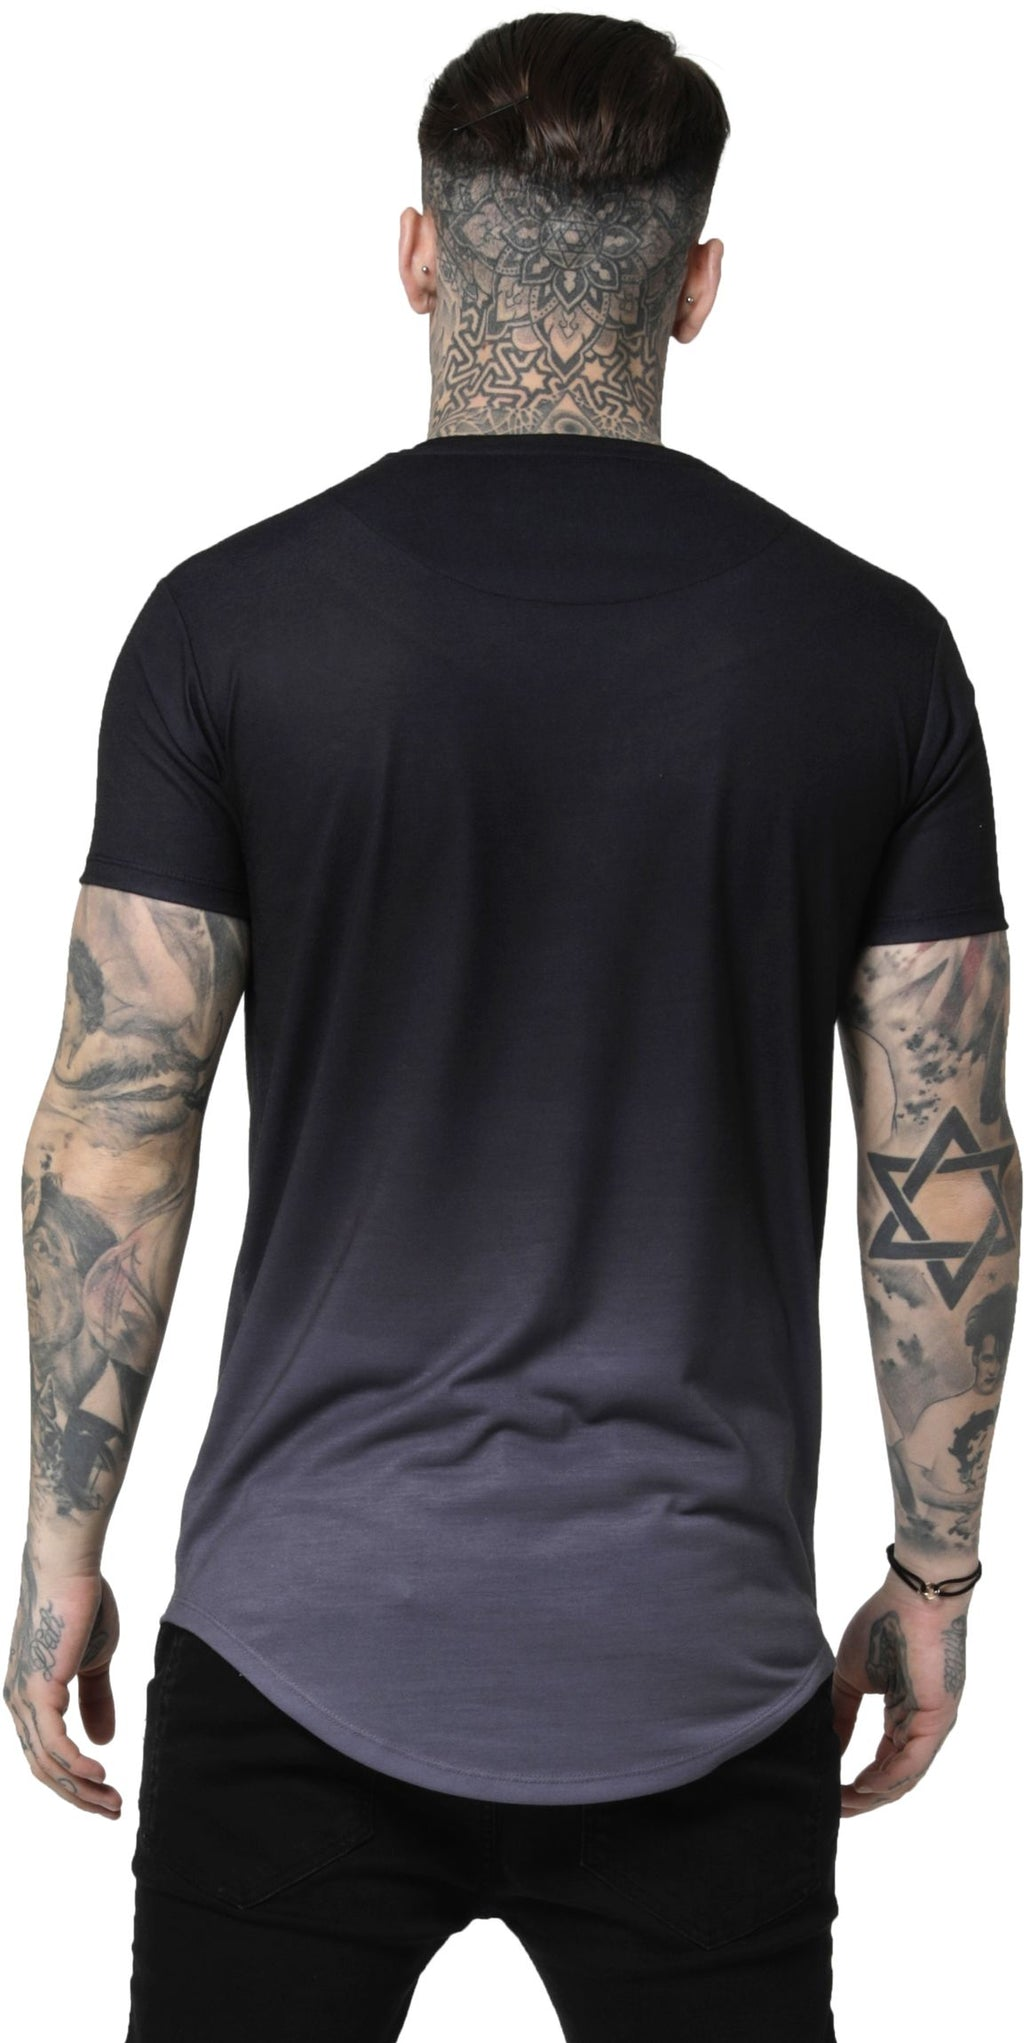 Sik Silk Curved Hem Fade T-Shirt Black/Grey